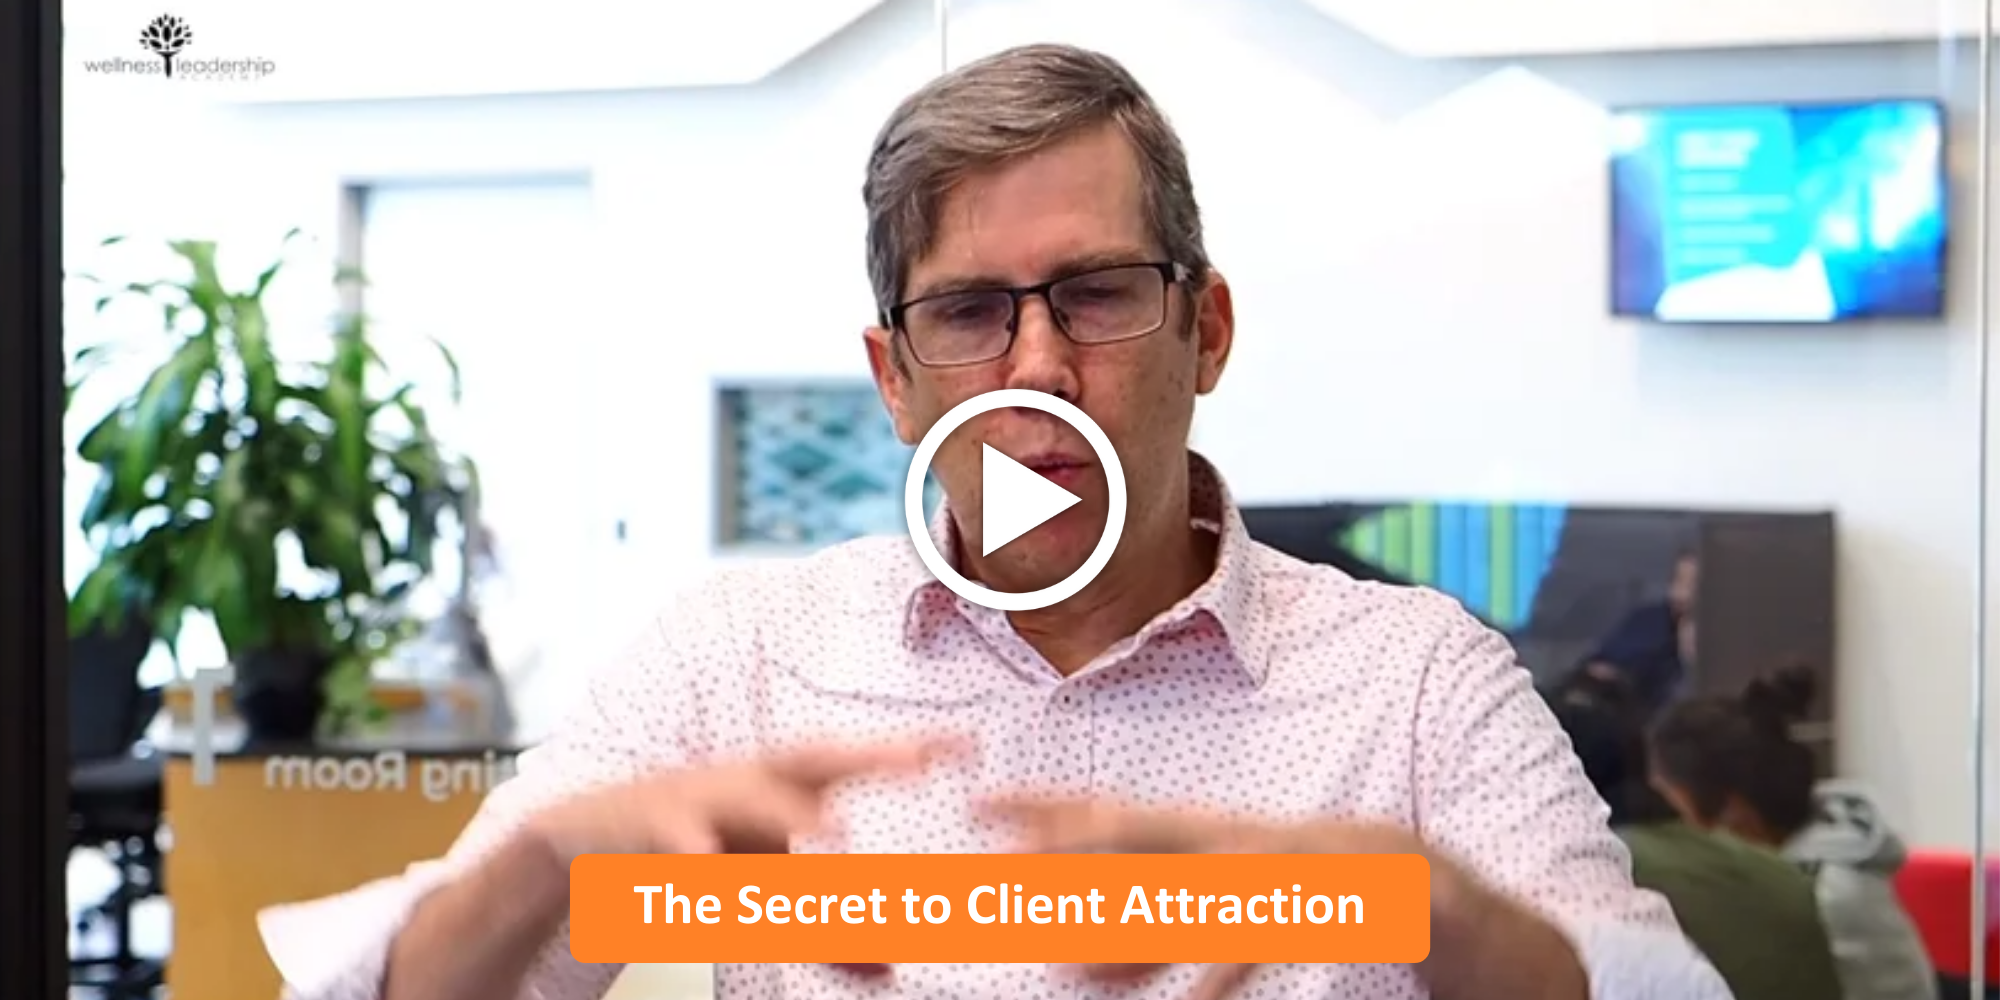 The Secret to Client Attraction